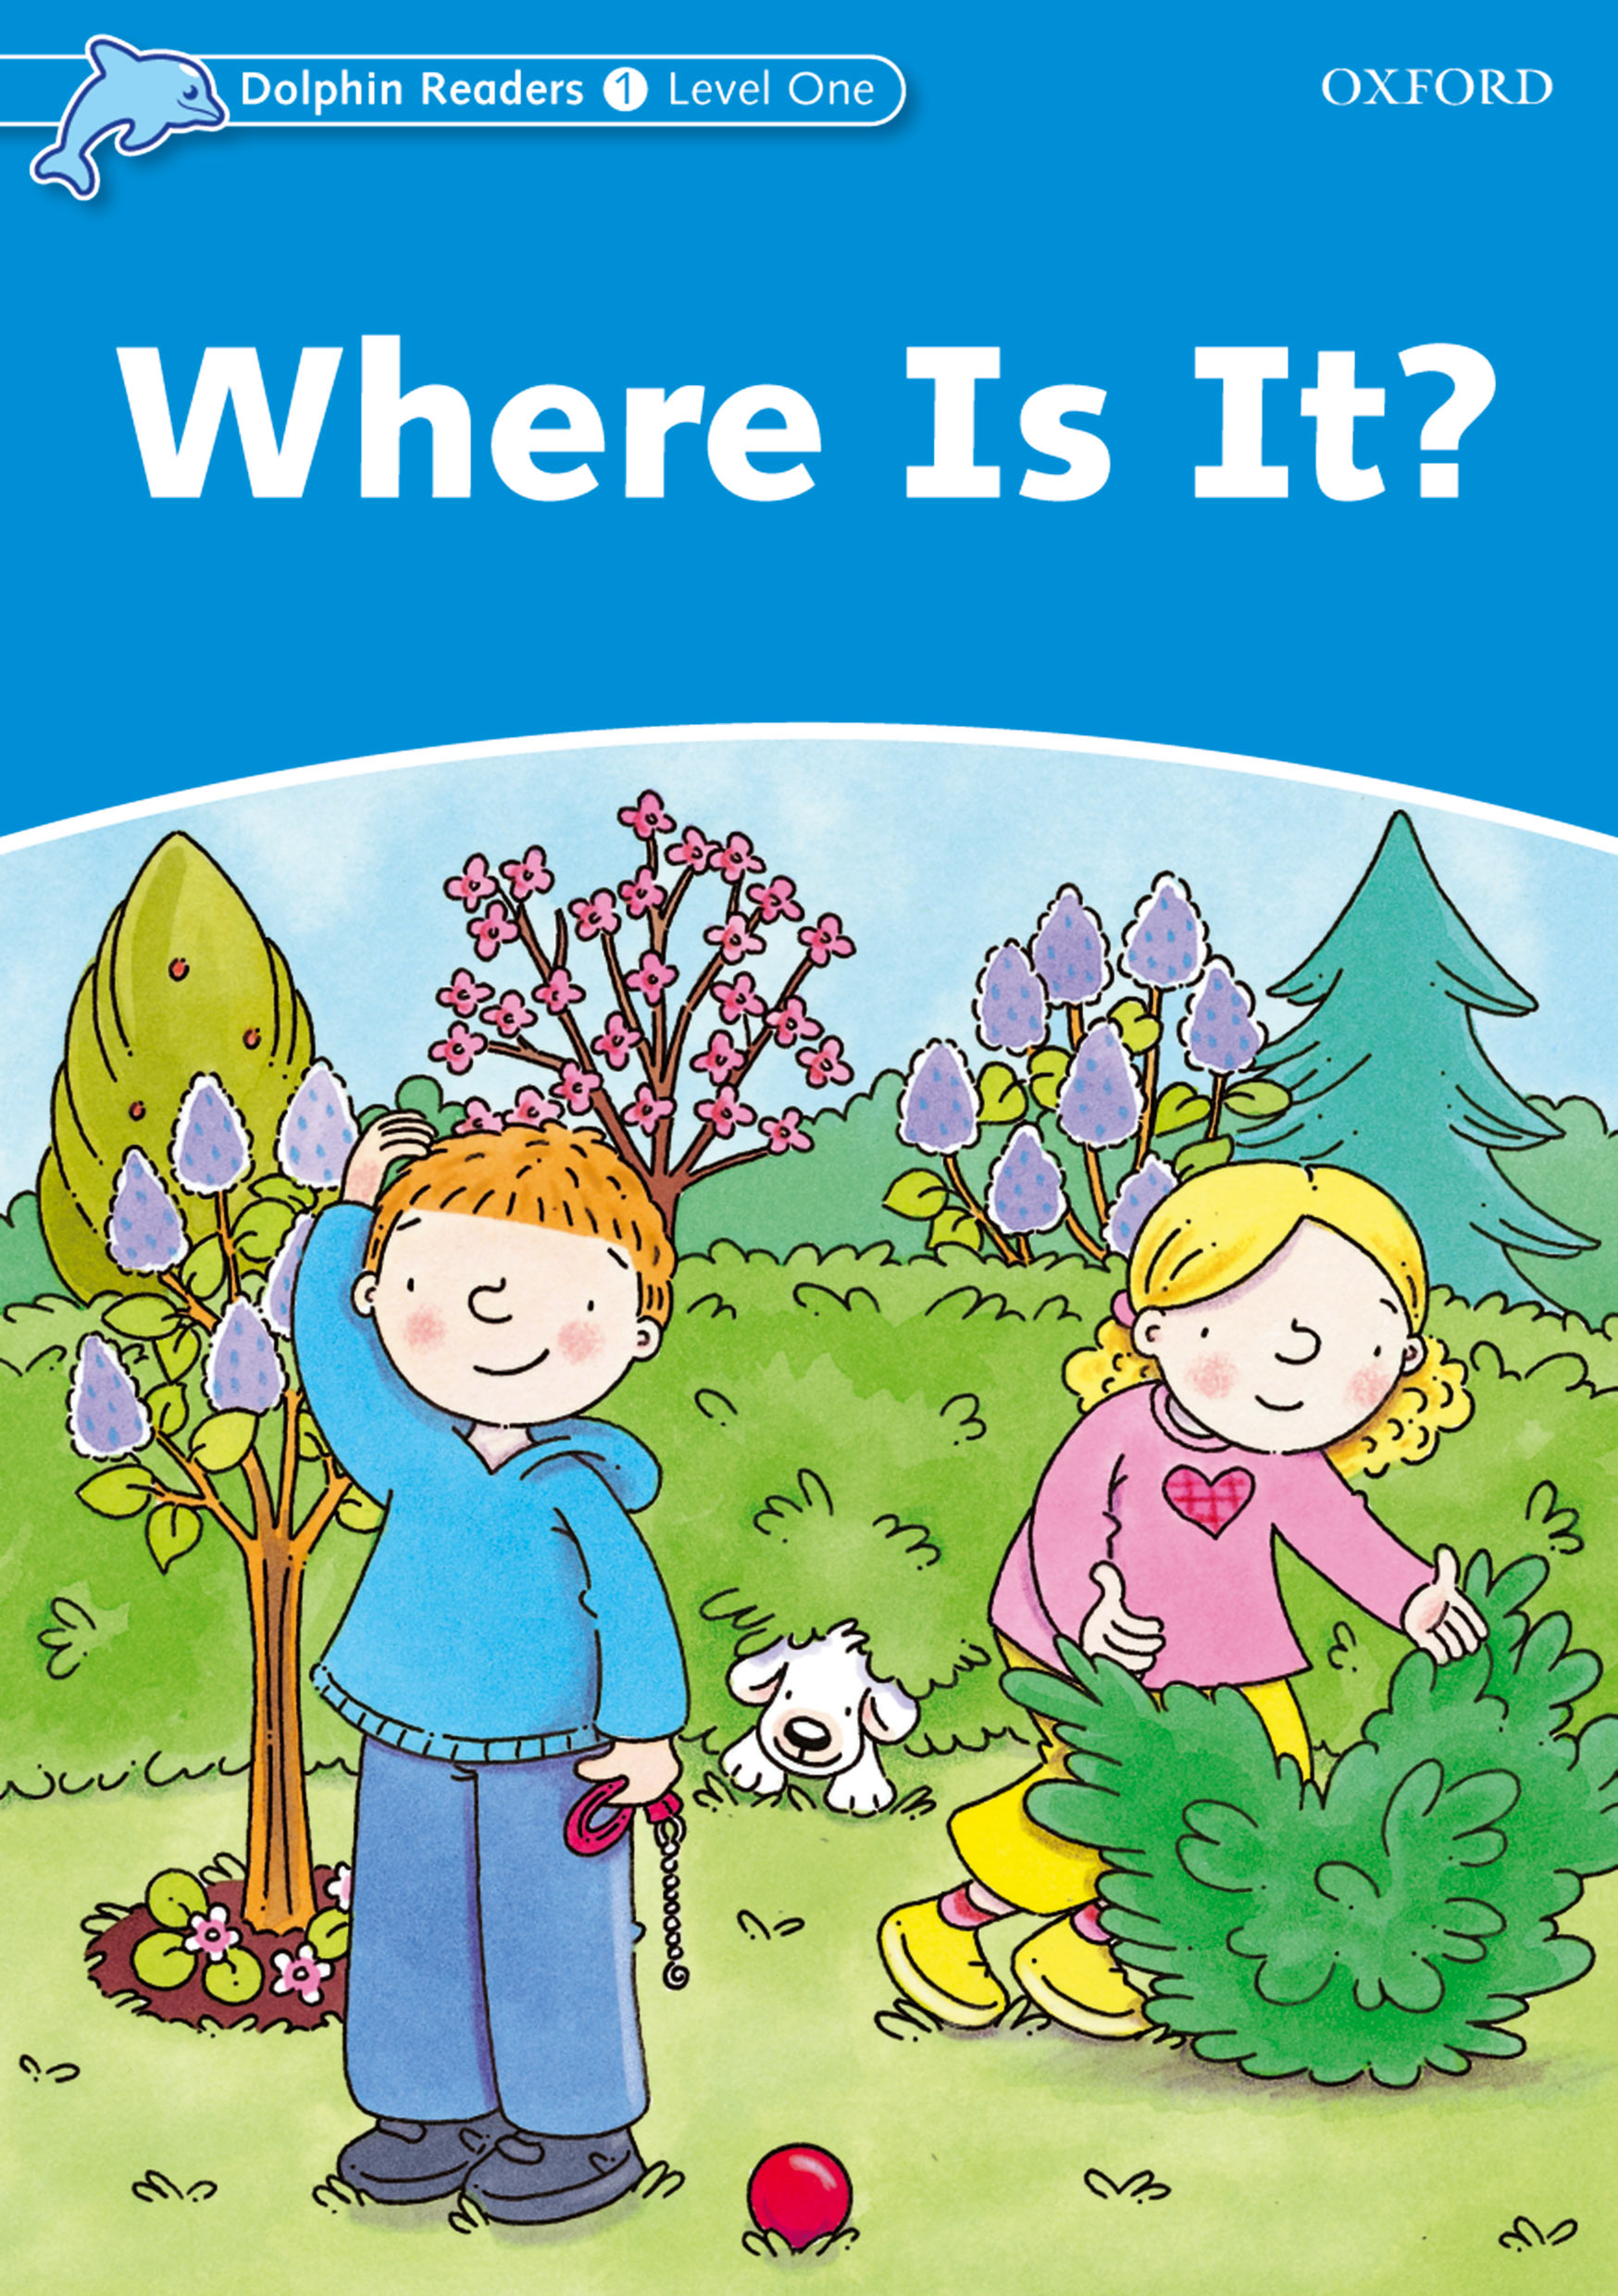 Where Is It Oxford Graded Readers - Where is oxford